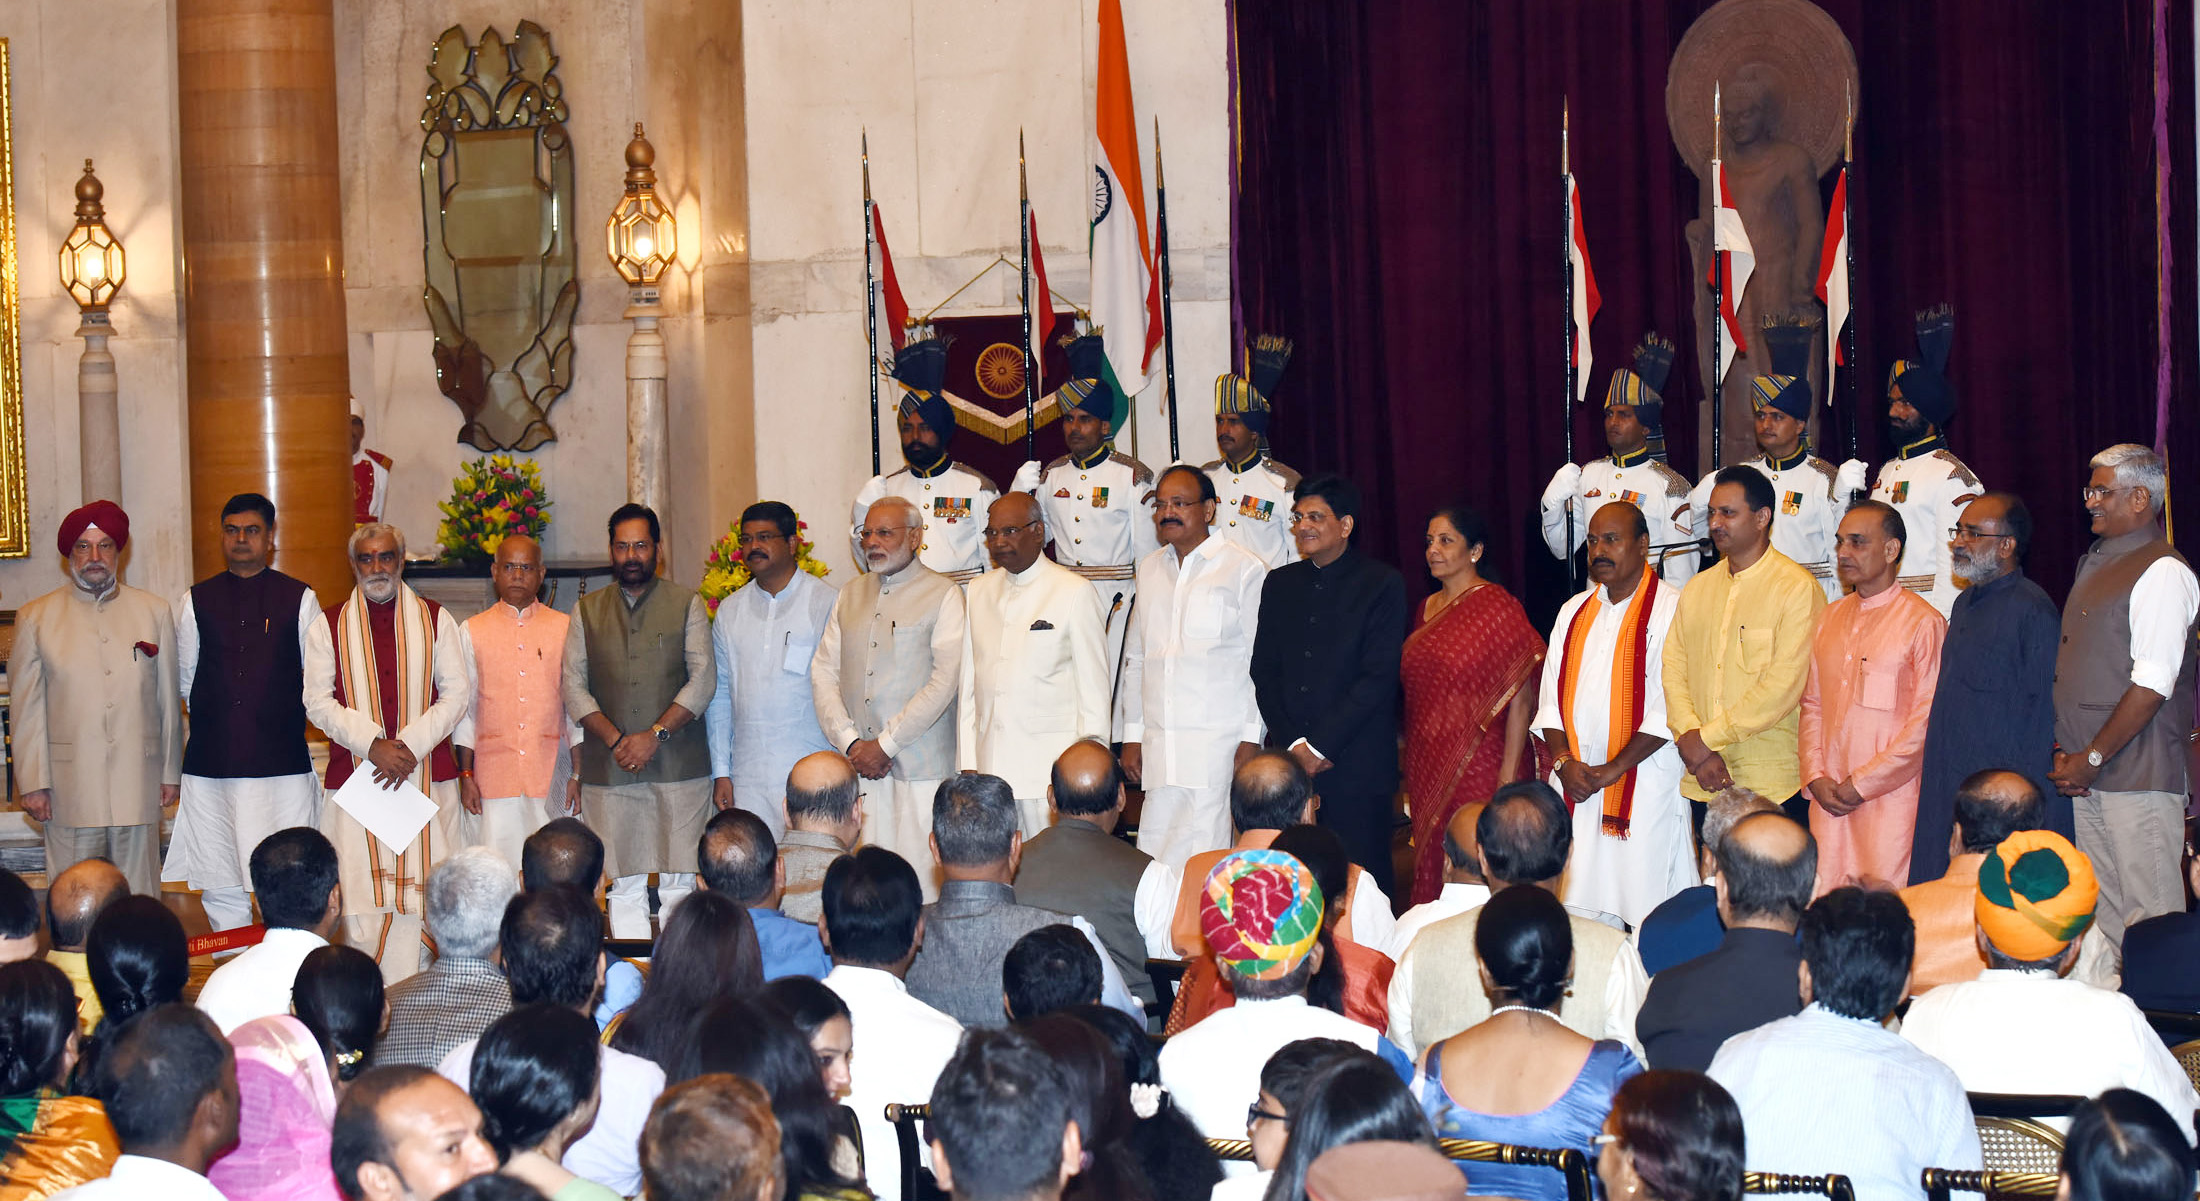 The President, Shri Ram Nath Kovind, the Vice President, Shri M. Venkaiah Naidu and the Prime Minister, Shri Narendra Modi with the newly inducted Ministers after a Swearing-in Ceremony, at Rashtrapati Bhavan, in New Delhi on September 03, 2017.